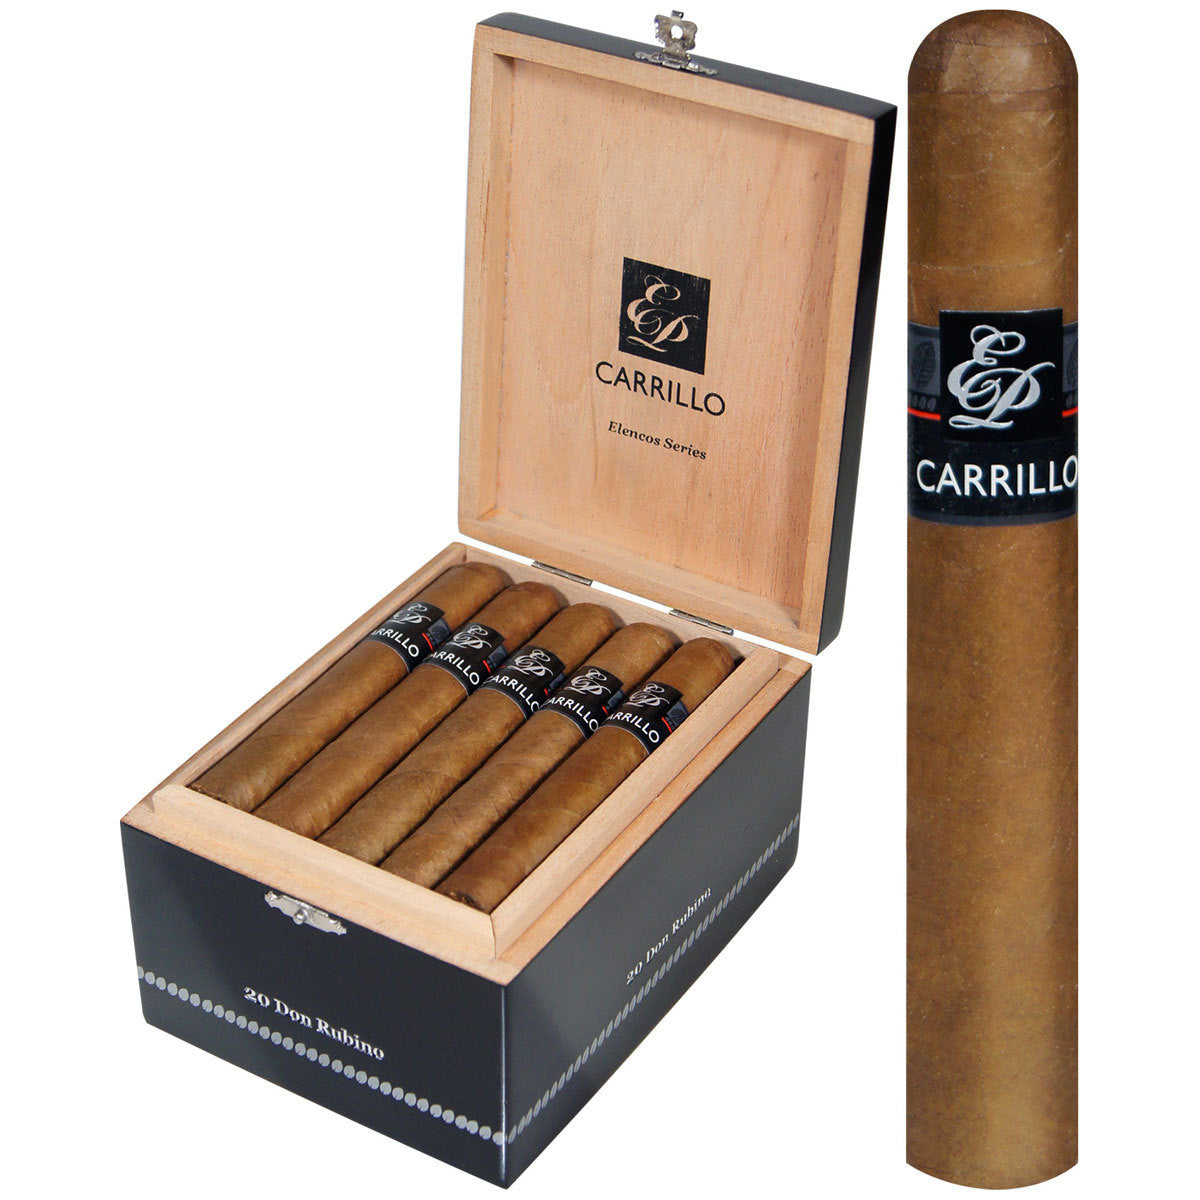 Ernesto Perez Carrillo cigars Box of 20 - Cigar boulevard